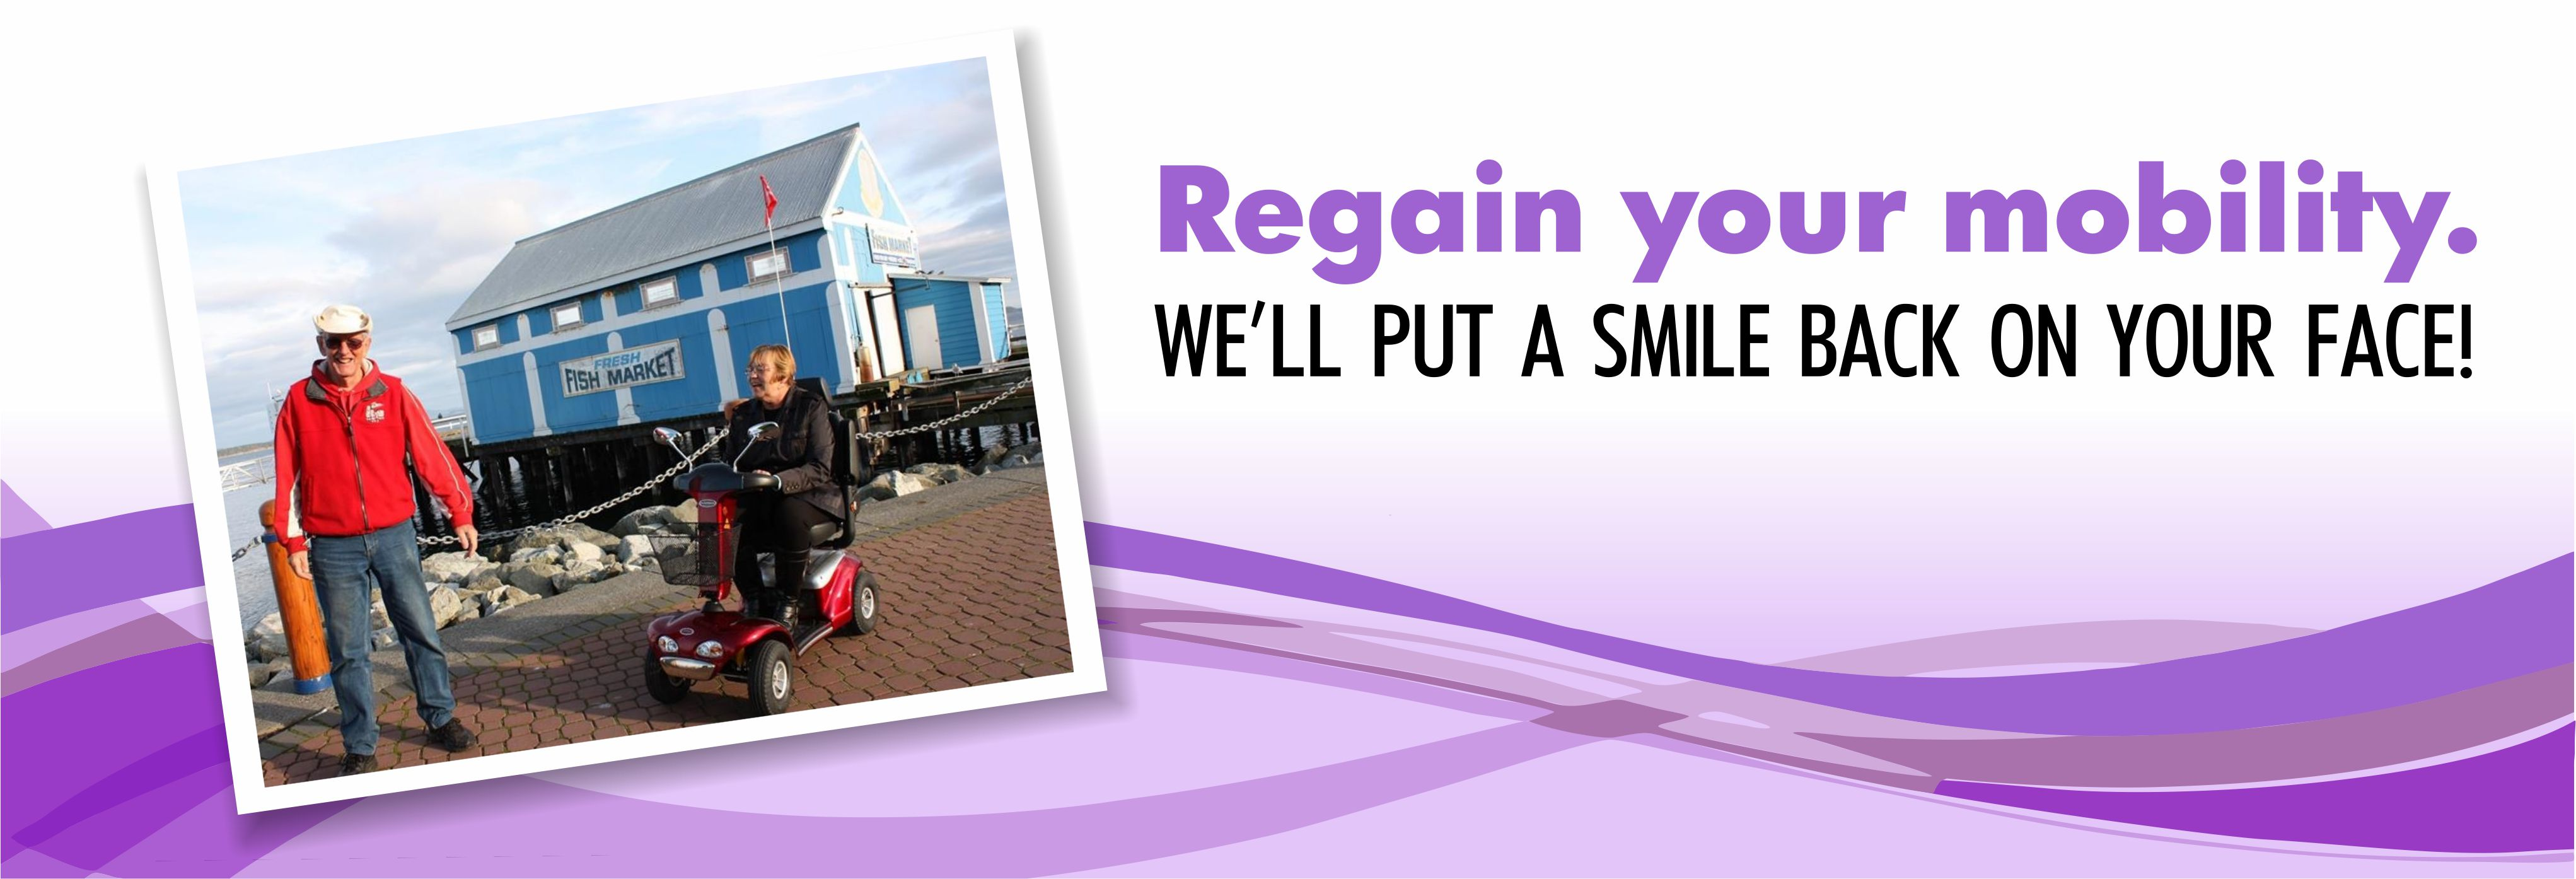 JPEG SIDNEY SCOOTERS – REGAIN YOUR MOBILITY IMAGE SLIDER